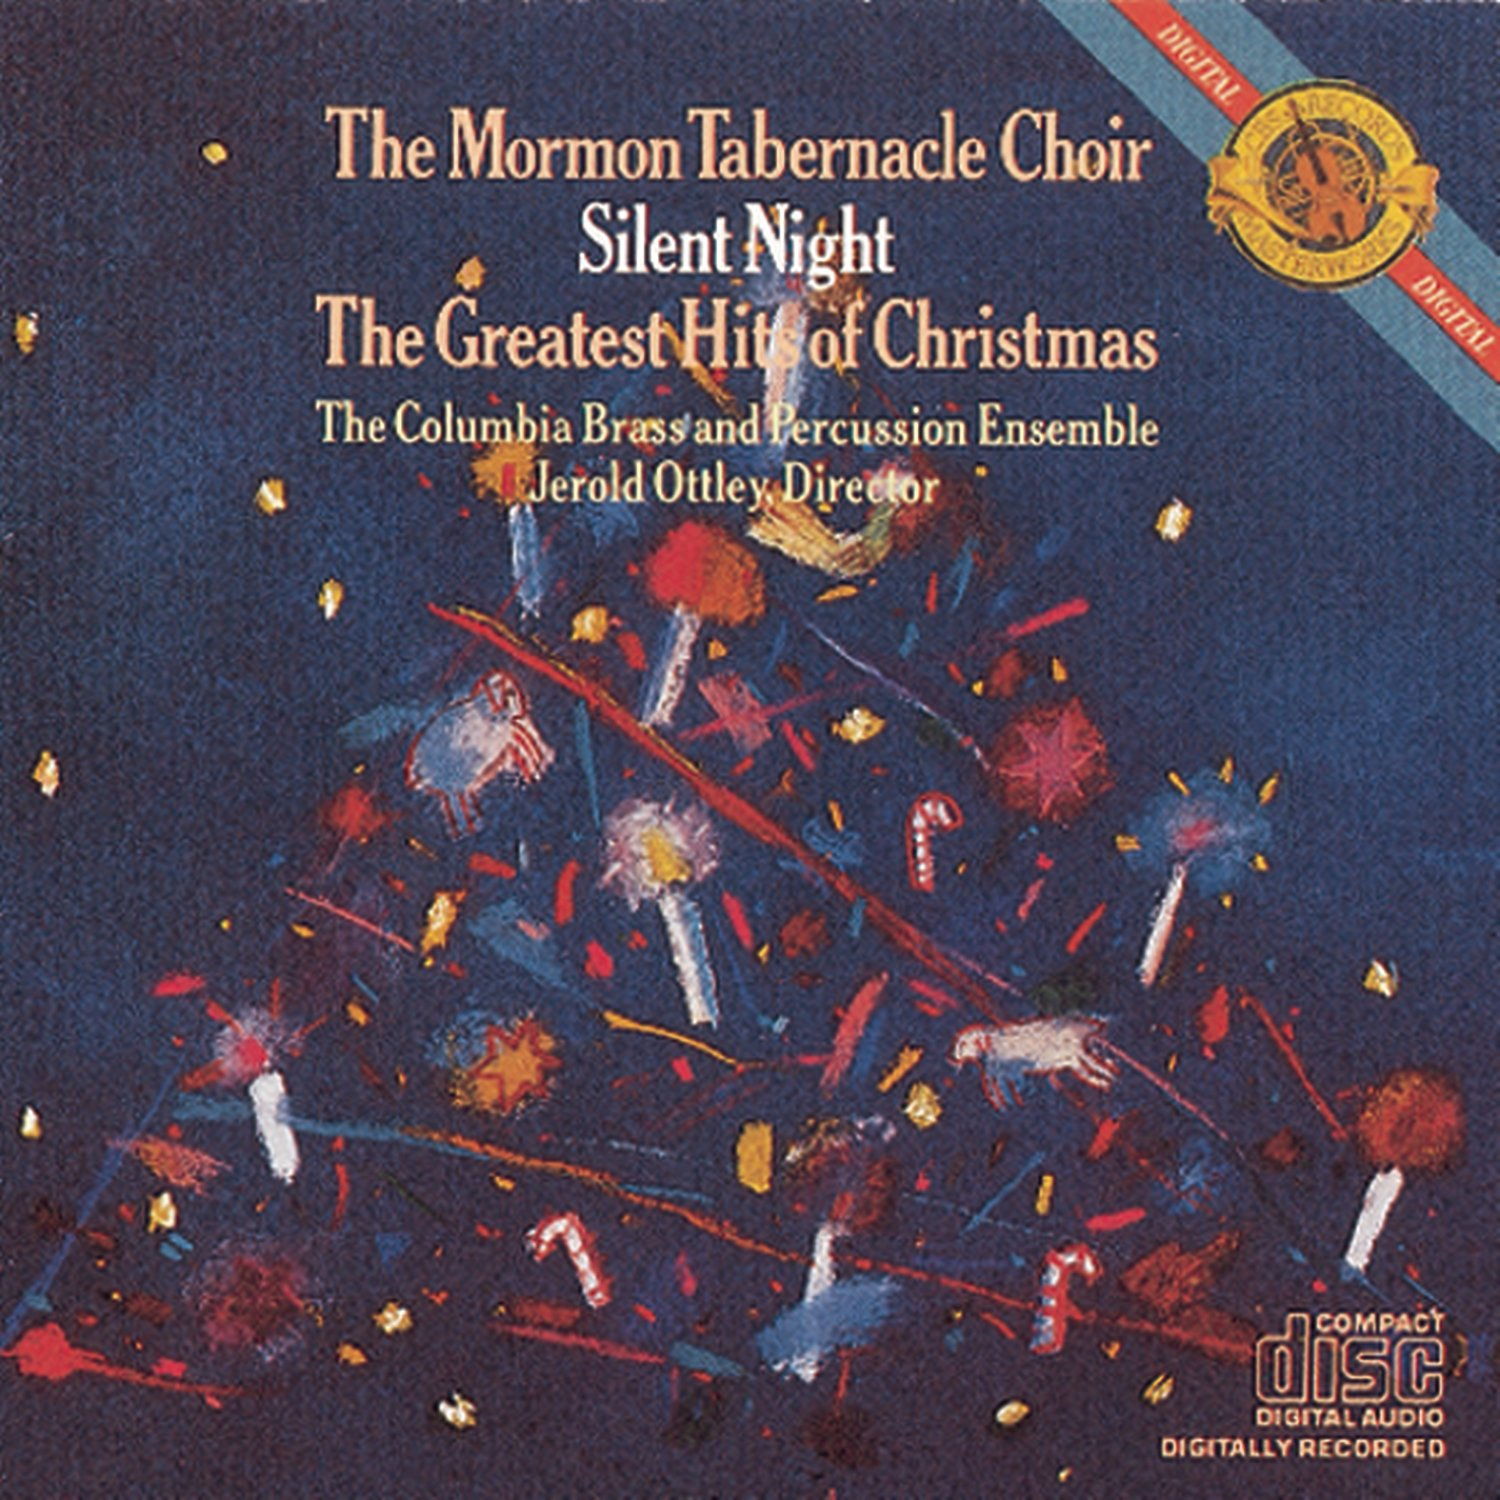 mormon tabernacle choir jerold ottley columbia brass percussion ensemble the mormon tabernacle choir silent night the greatest hits of christmas